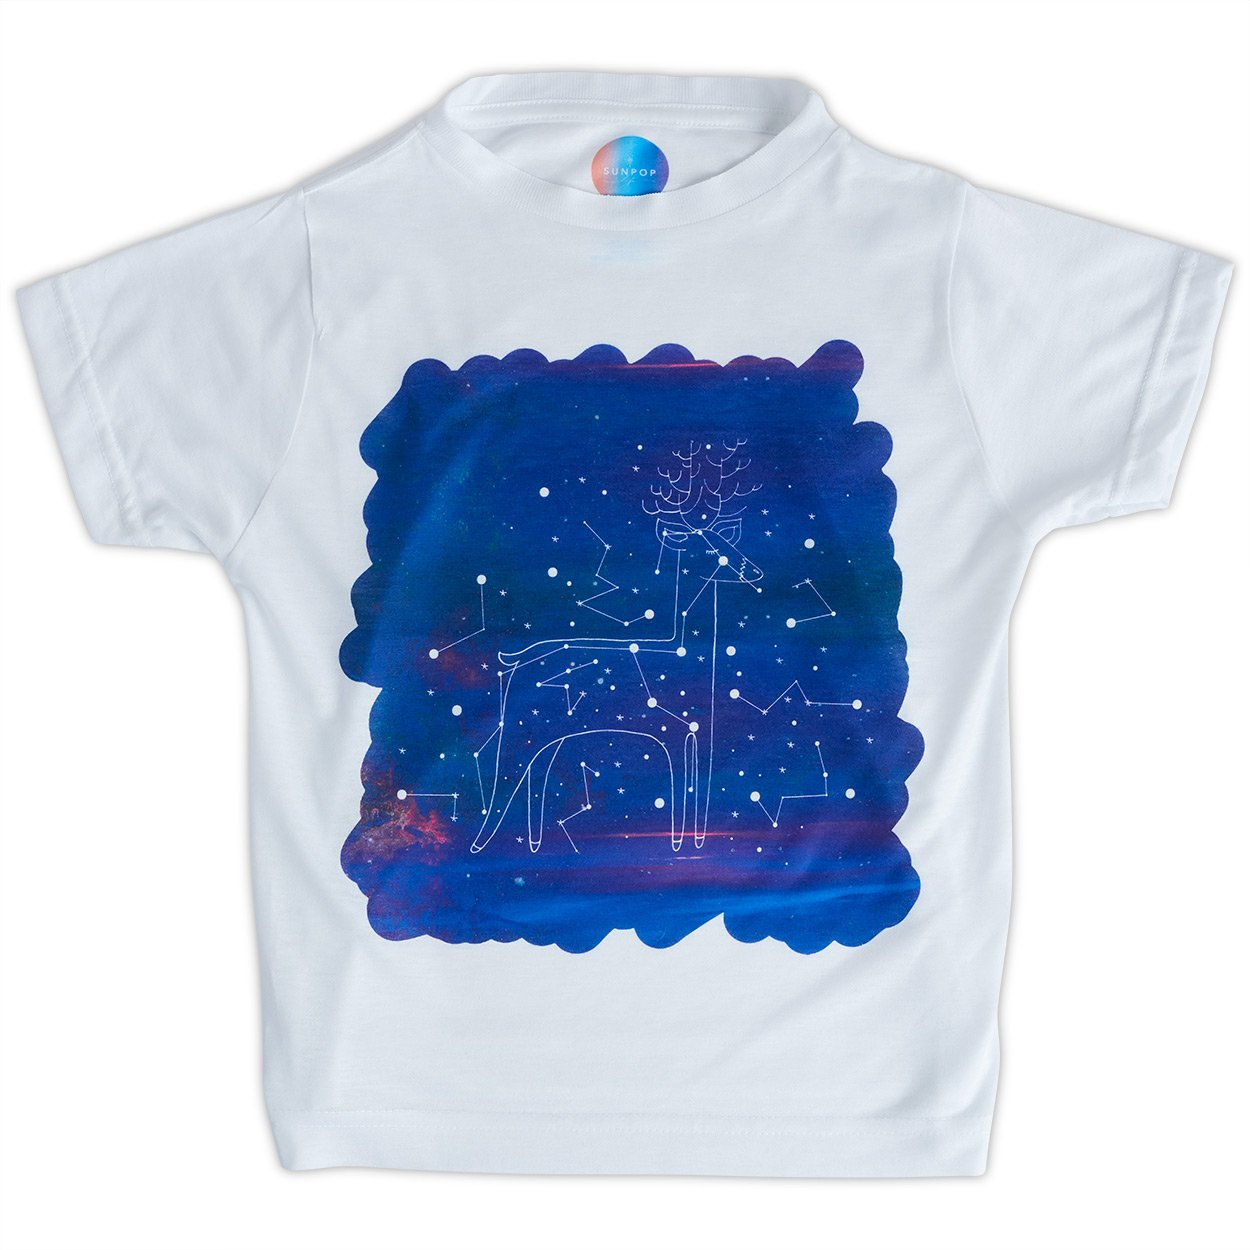 Kids Deer Graphic T-shirt